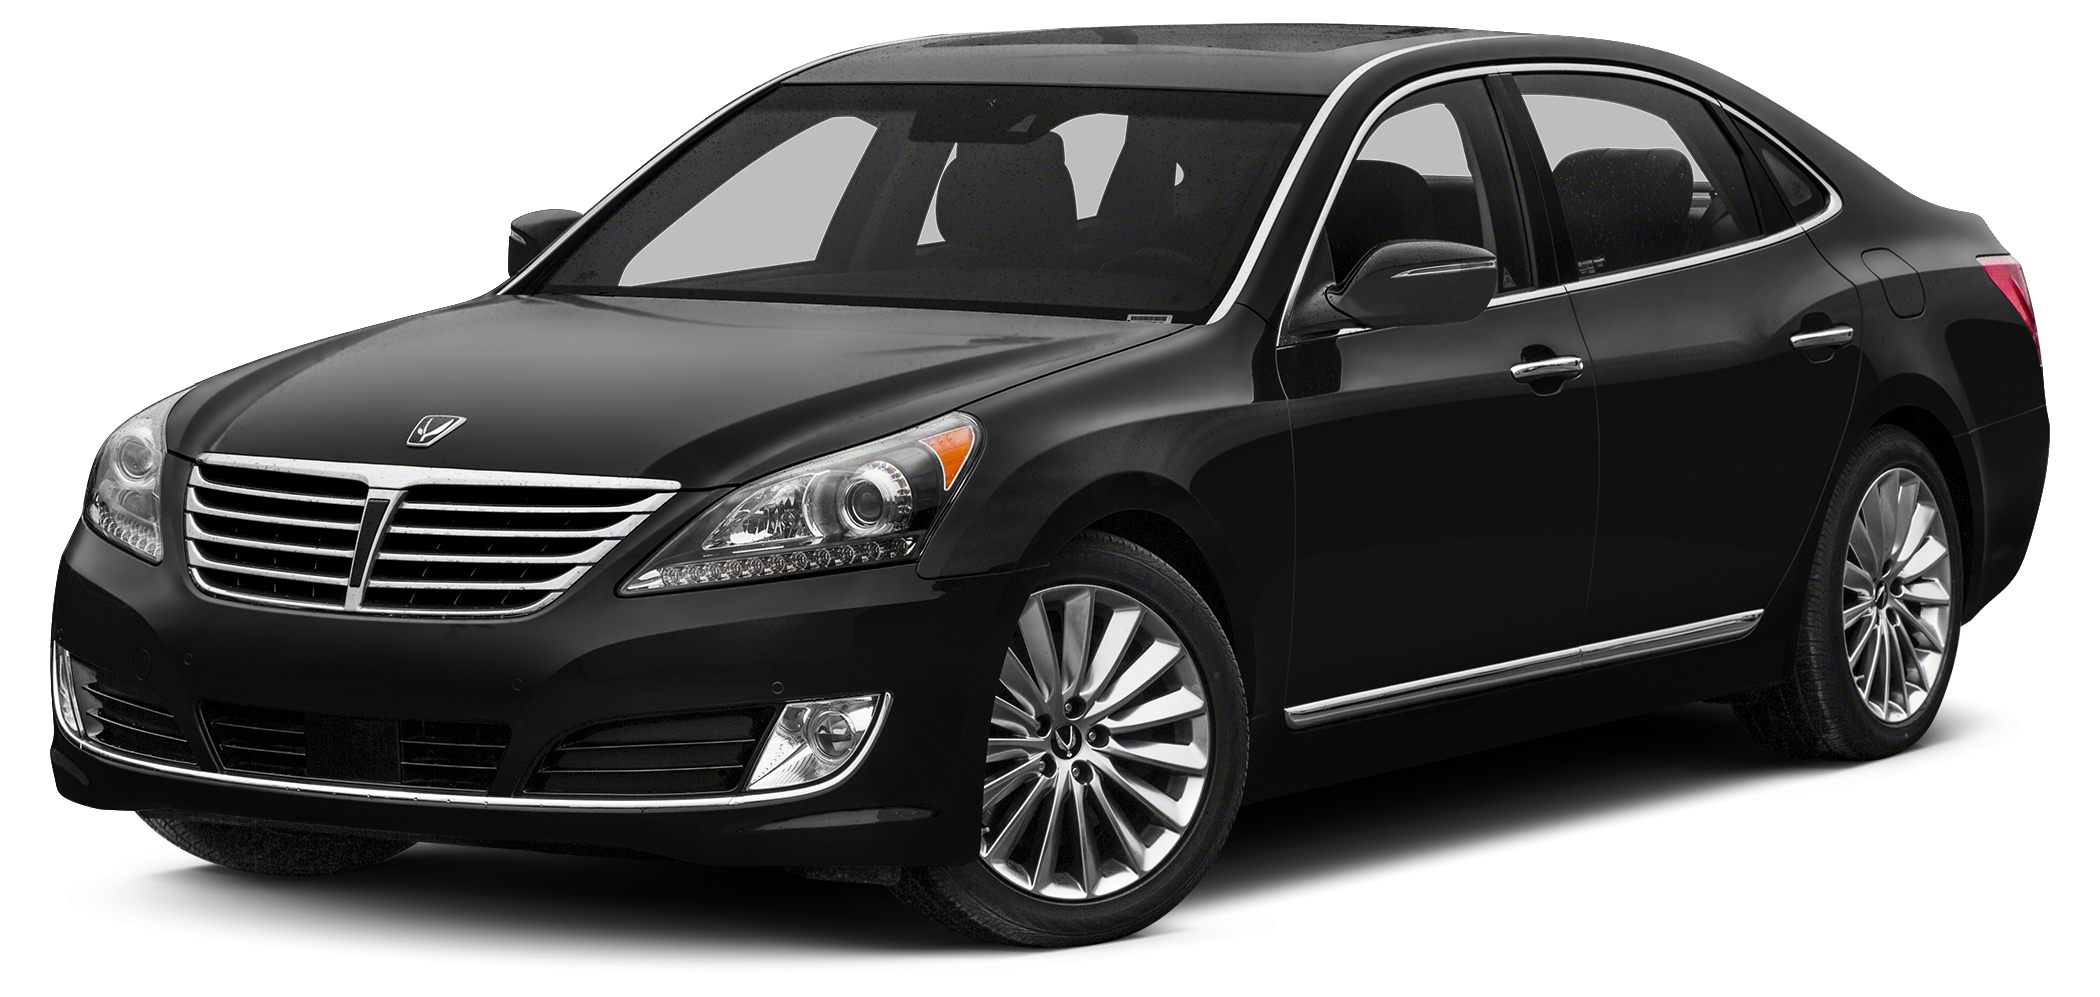 2015 Hyundai Equus Ultimate 2015 Hyundai Equus Ultimate in Caspian Black and Bluetooth for Phone a